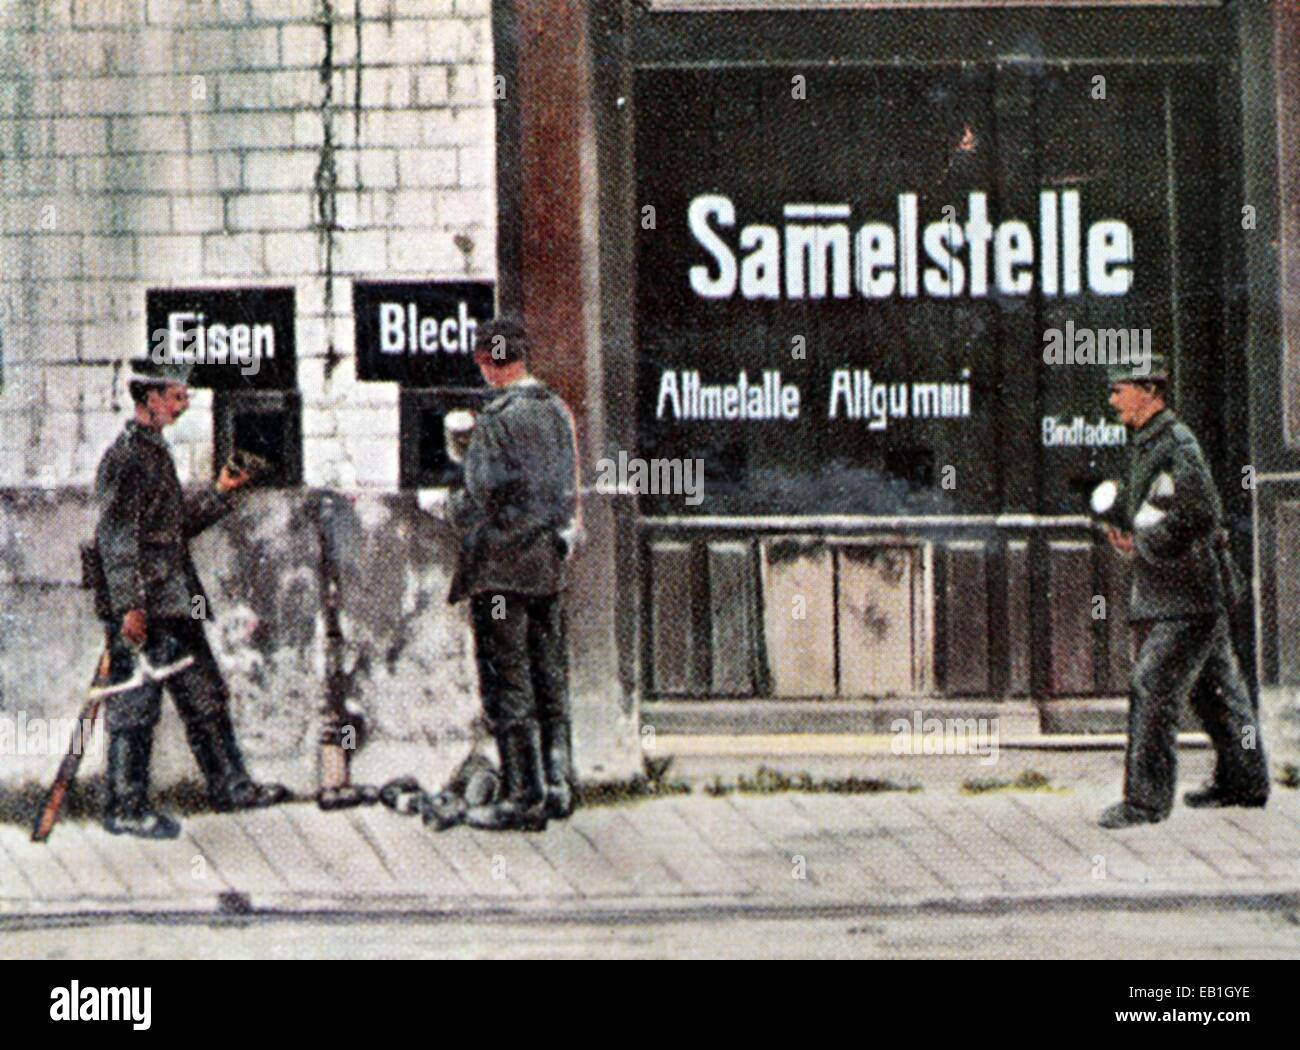 The contemporary colorized German propaganda photo shows a collection site for old materials such as iron, brass, Stock Photo